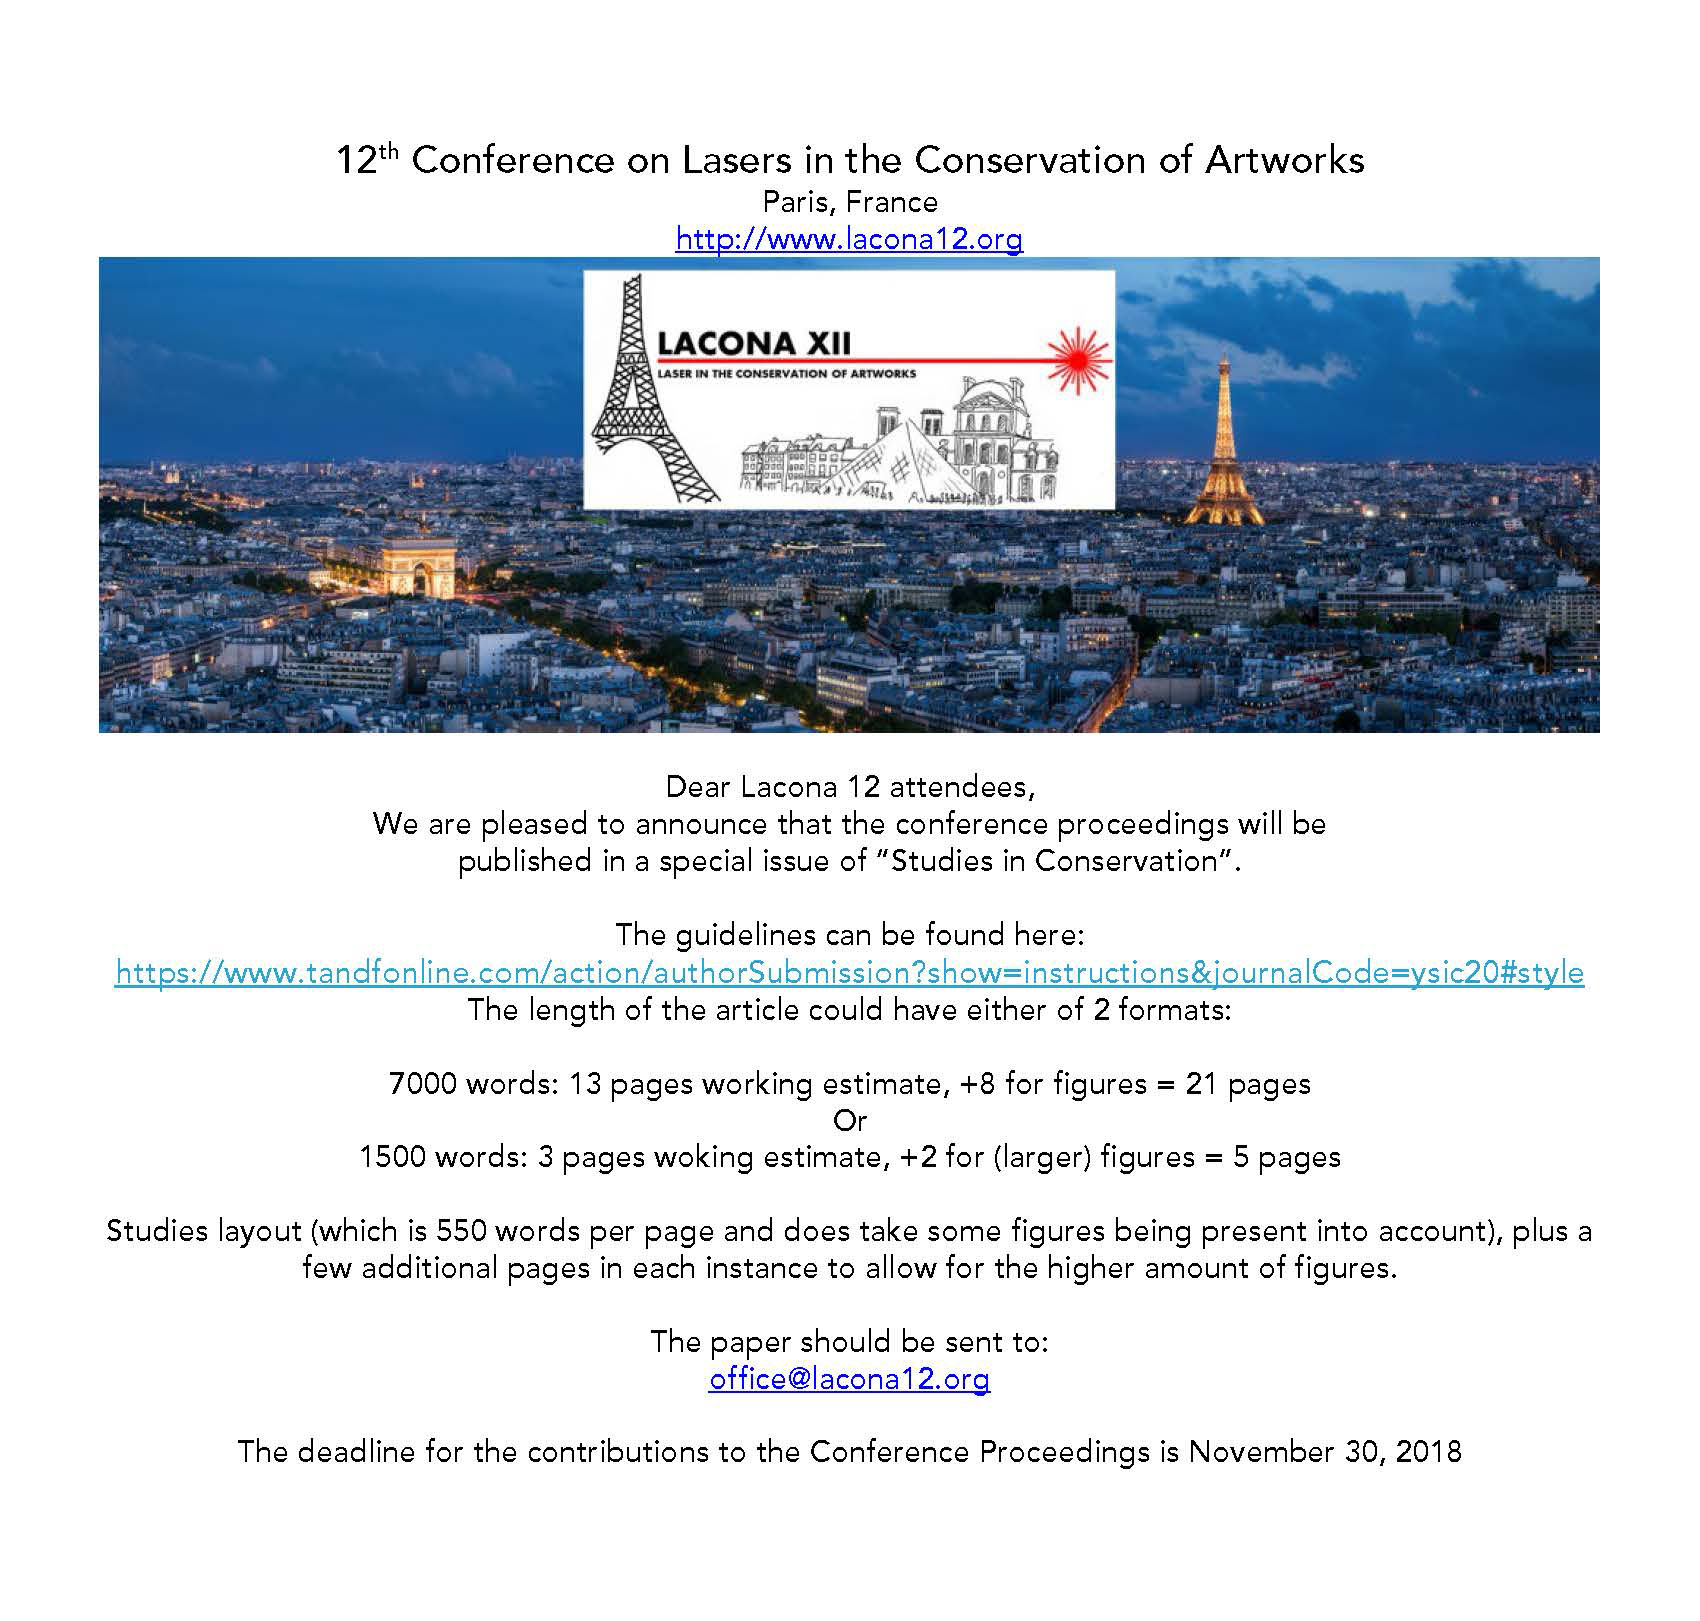 12th Conference on Lasers in the Conservation of Artworks